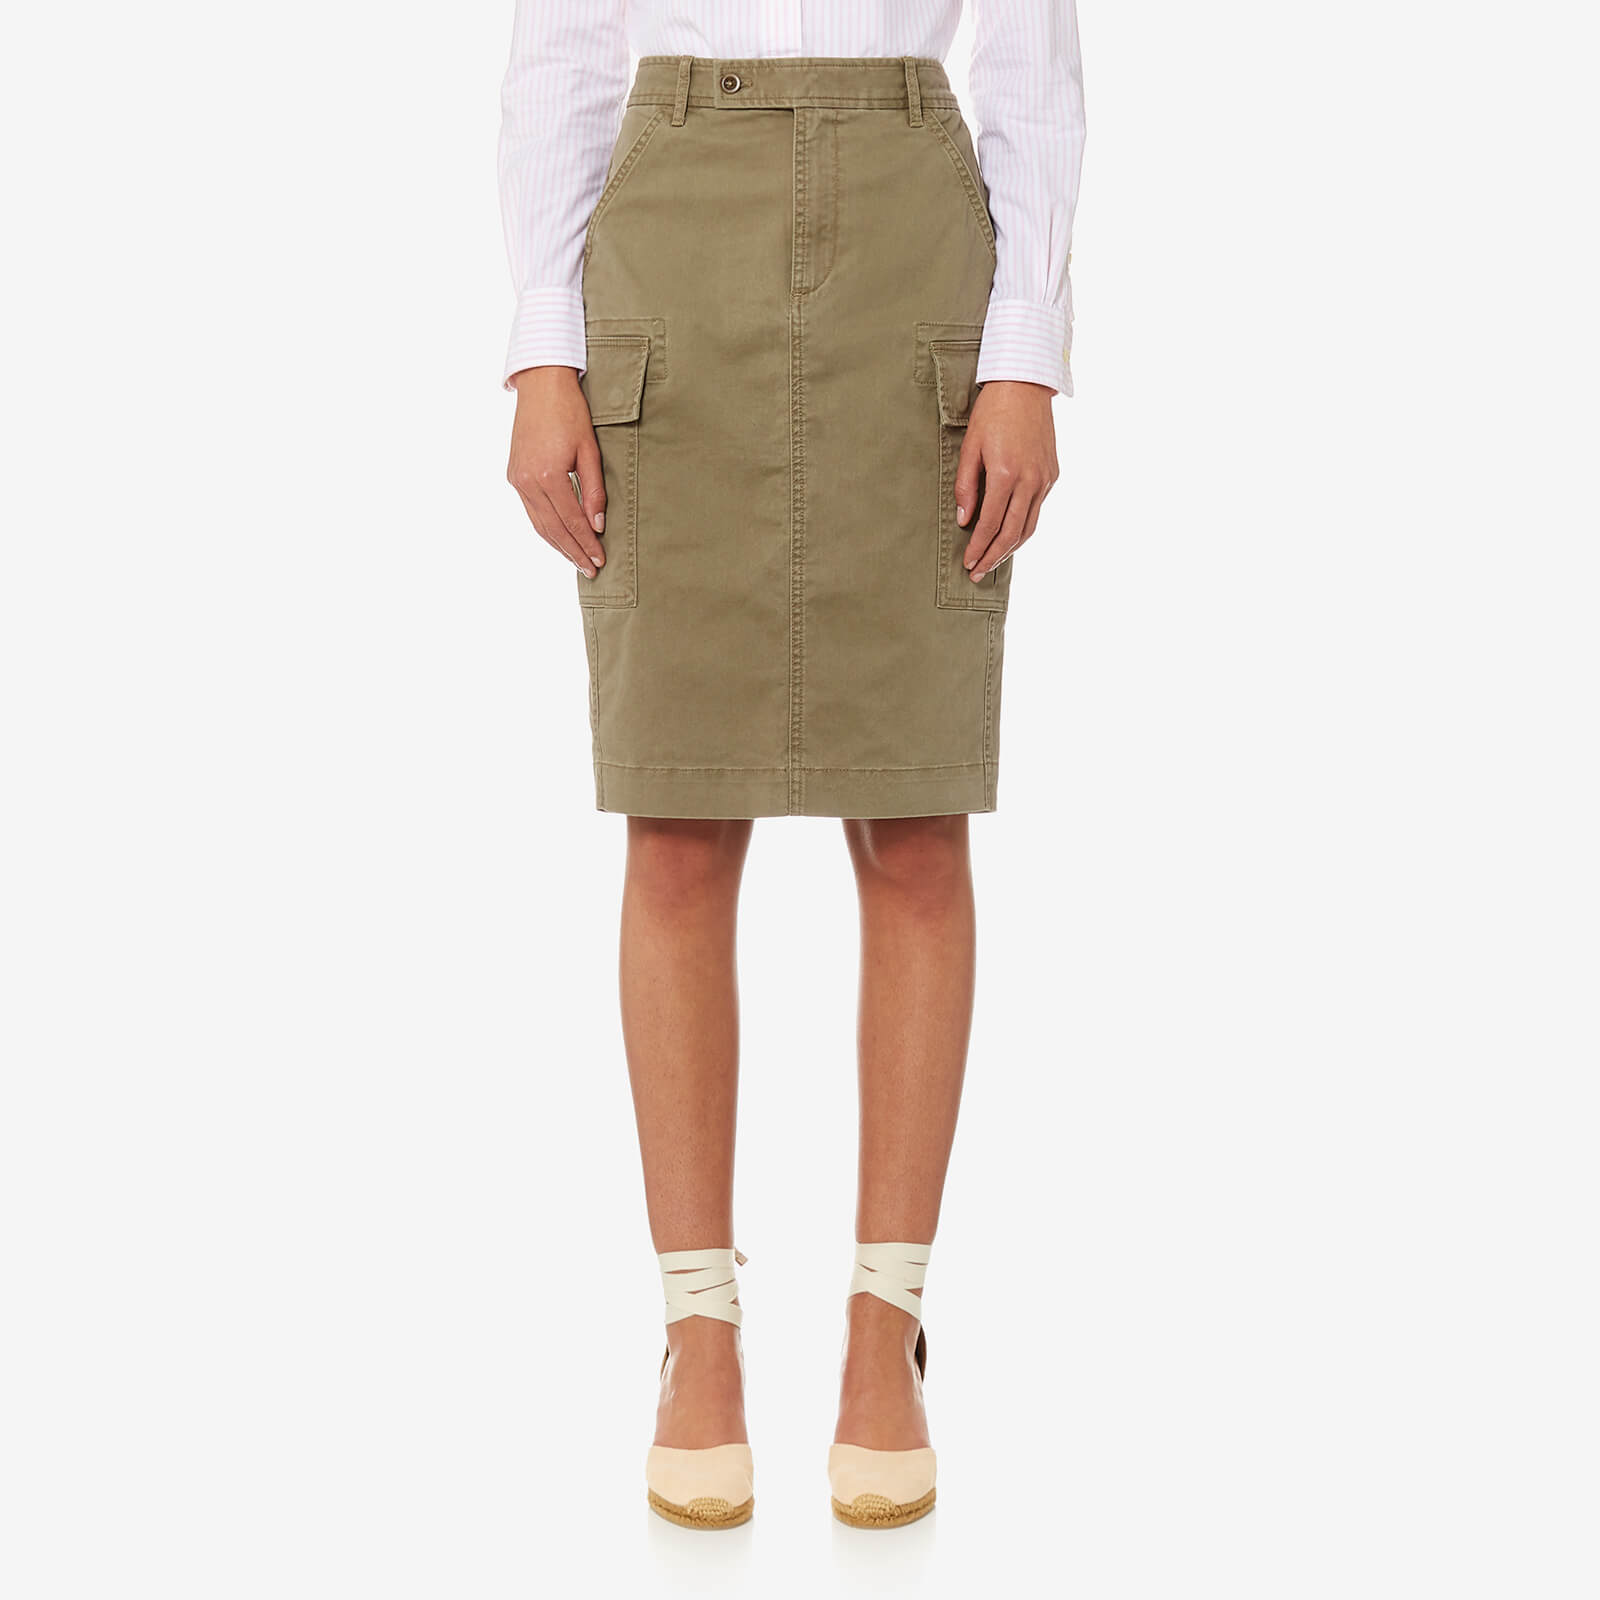 9b1c4c2f2 Polo Ralph Lauren Women's Cargo Pencil Skirt - Khaki - Free UK Delivery  over £50